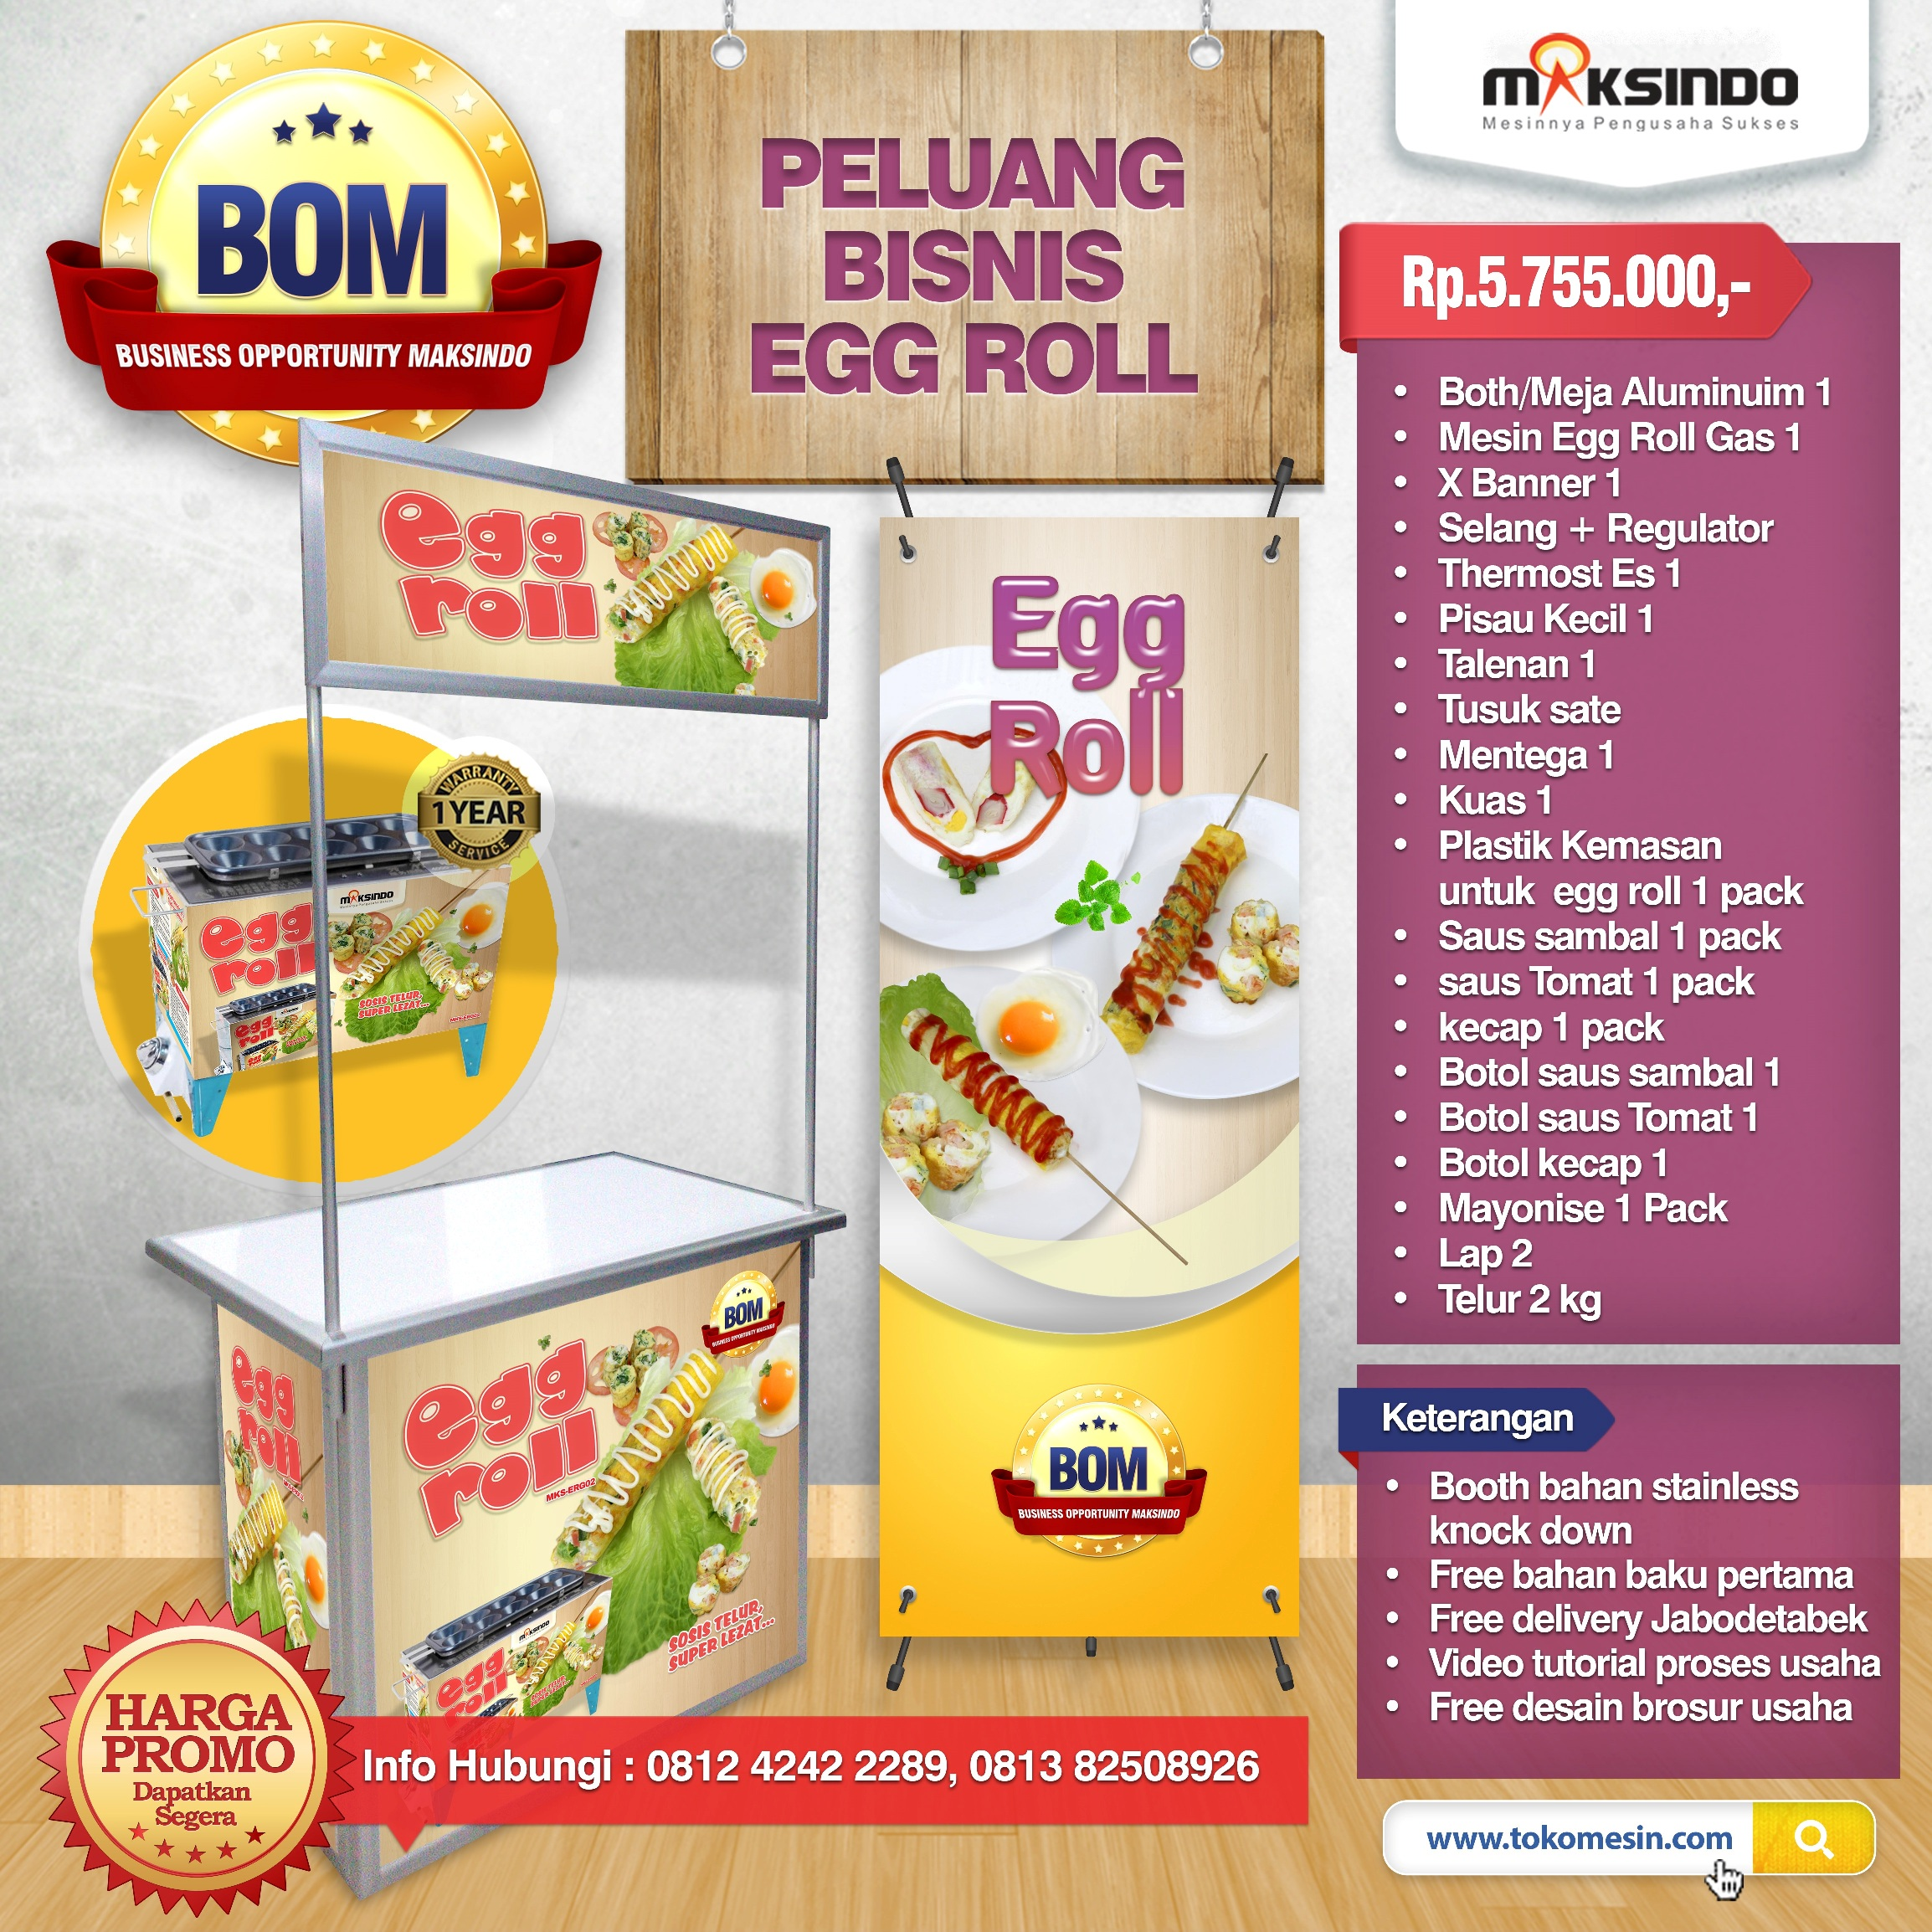 2.DESIGN egg roll GAS